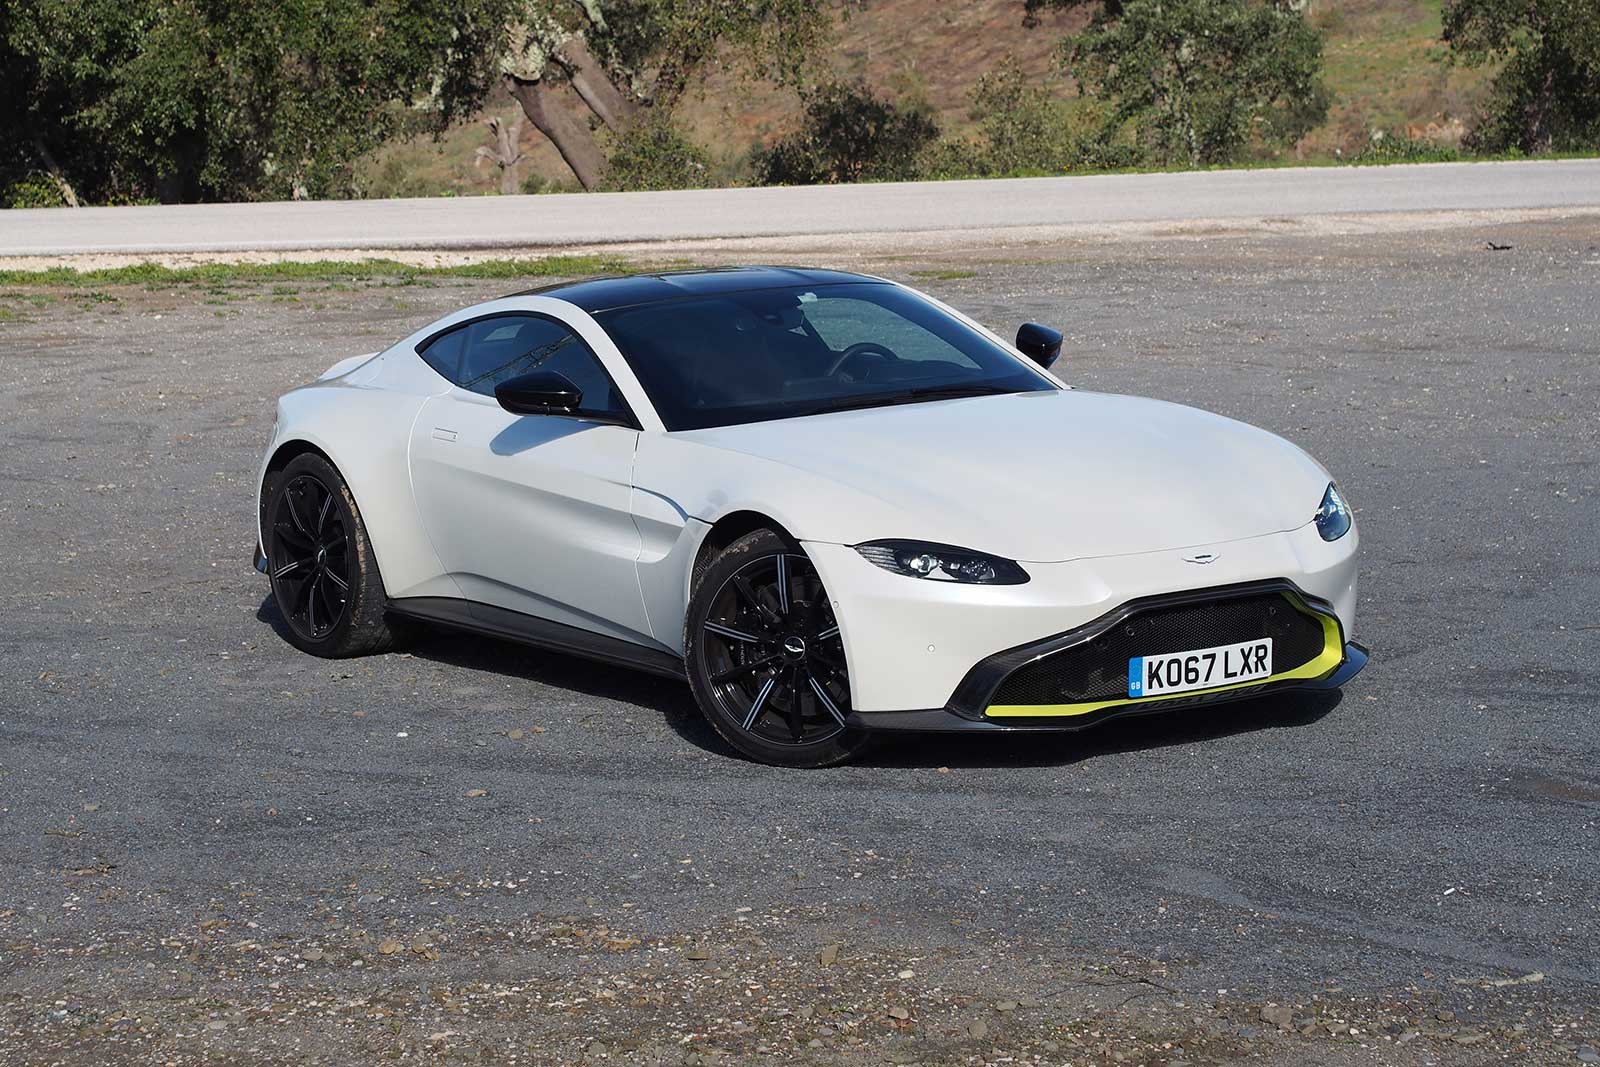 Design Secrets Of The Aston Martin Vantage AutoGuidecom News - Aston martin news